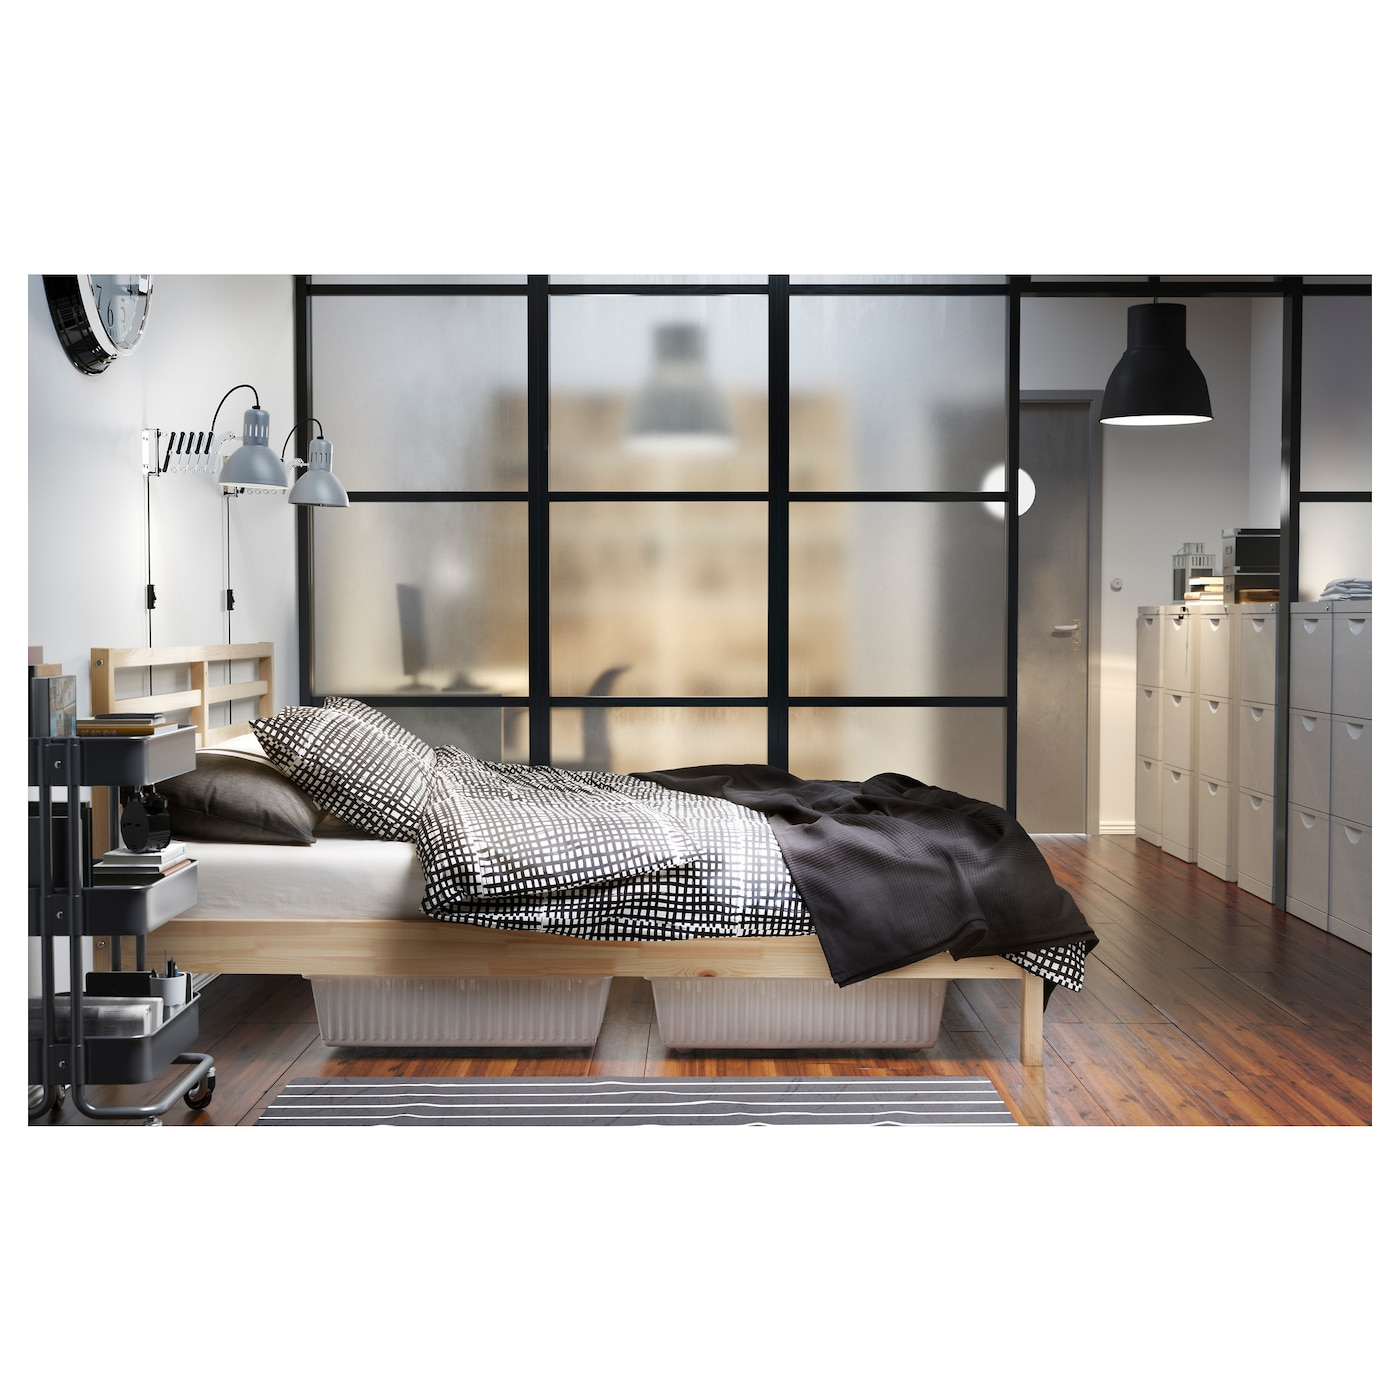 tarva cadre de lit pin 140x200 cm ikea. Black Bedroom Furniture Sets. Home Design Ideas